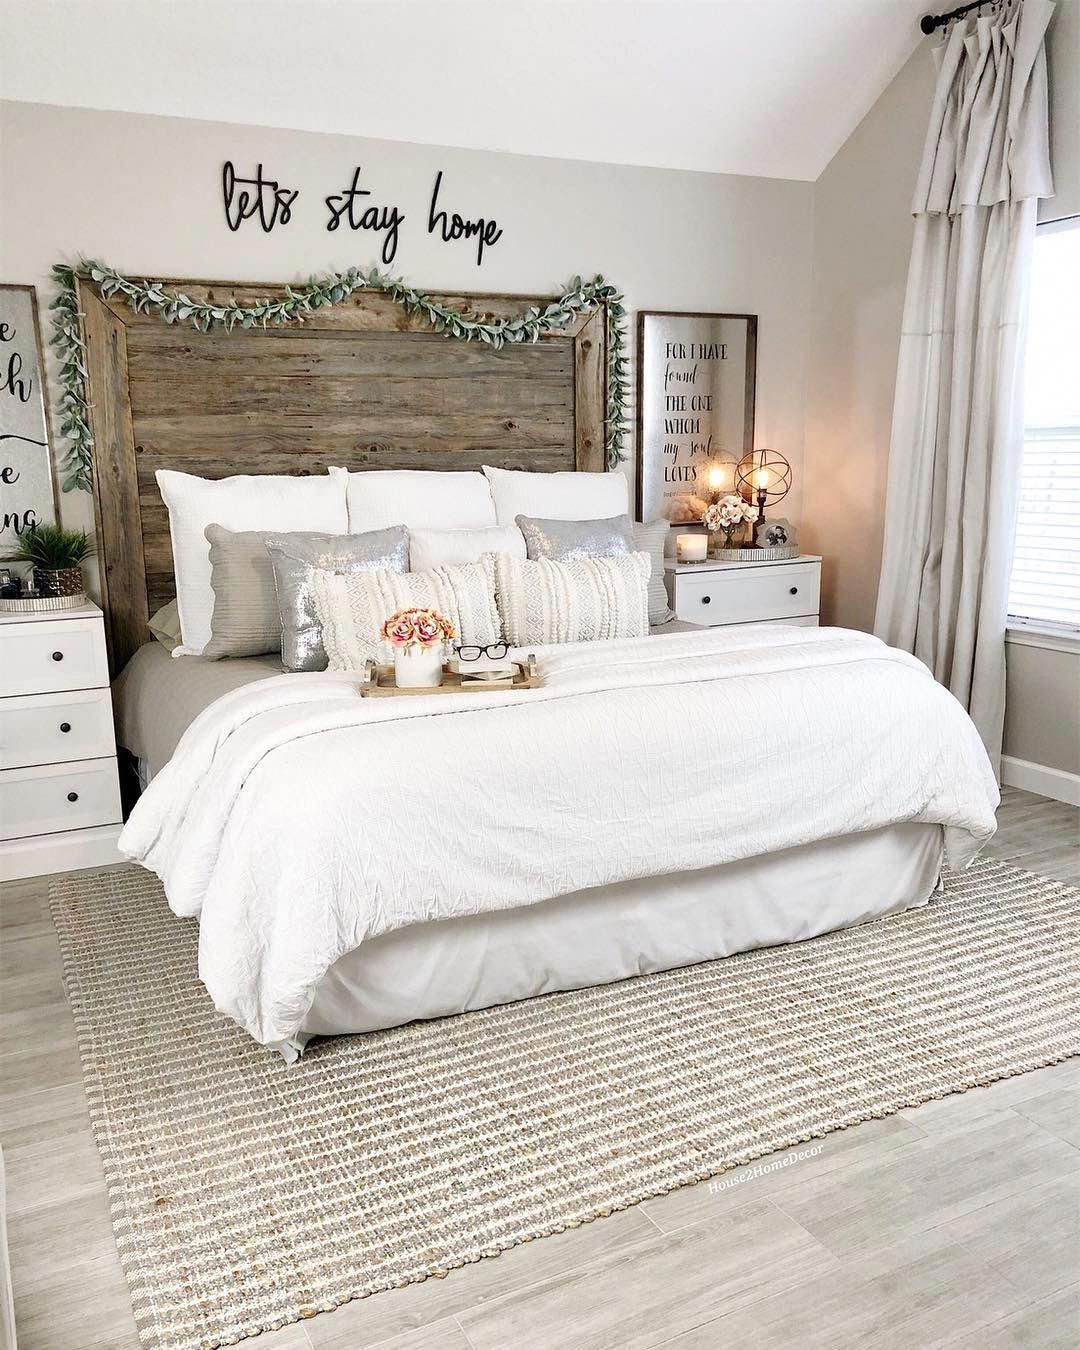 Cozy Modern Farmhouse Bedroom Design Decor Ideas Farmhousebedroom Bedroomdesign Farmhouse Style Master Bedroom Small Master Bedroom Master Bedroom Makeover